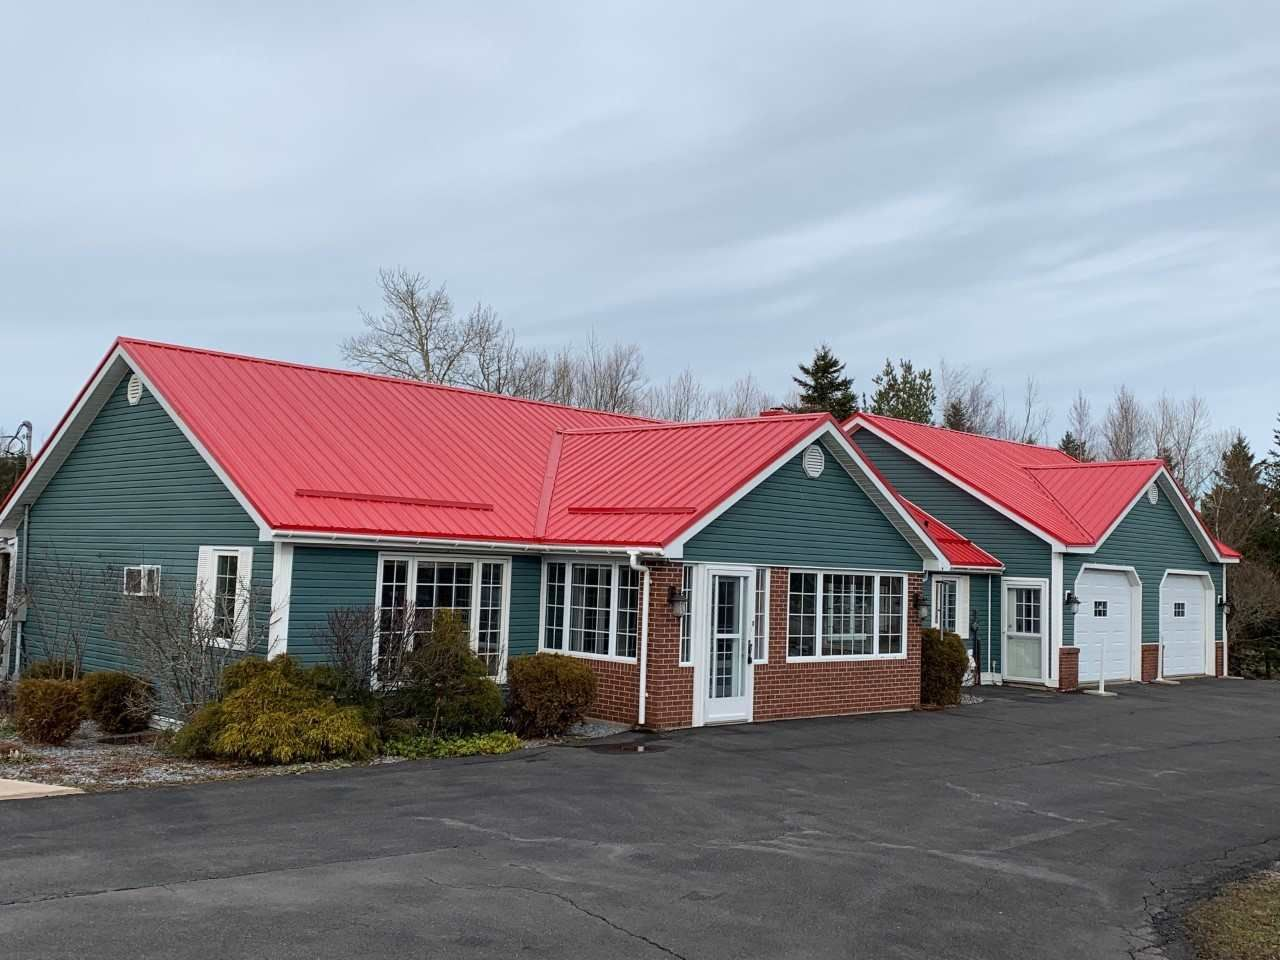 Main Photo: 5019 Highway 4 in Alma: 108-Rural Pictou County Residential for sale (Northern Region)  : MLS®# 202113867